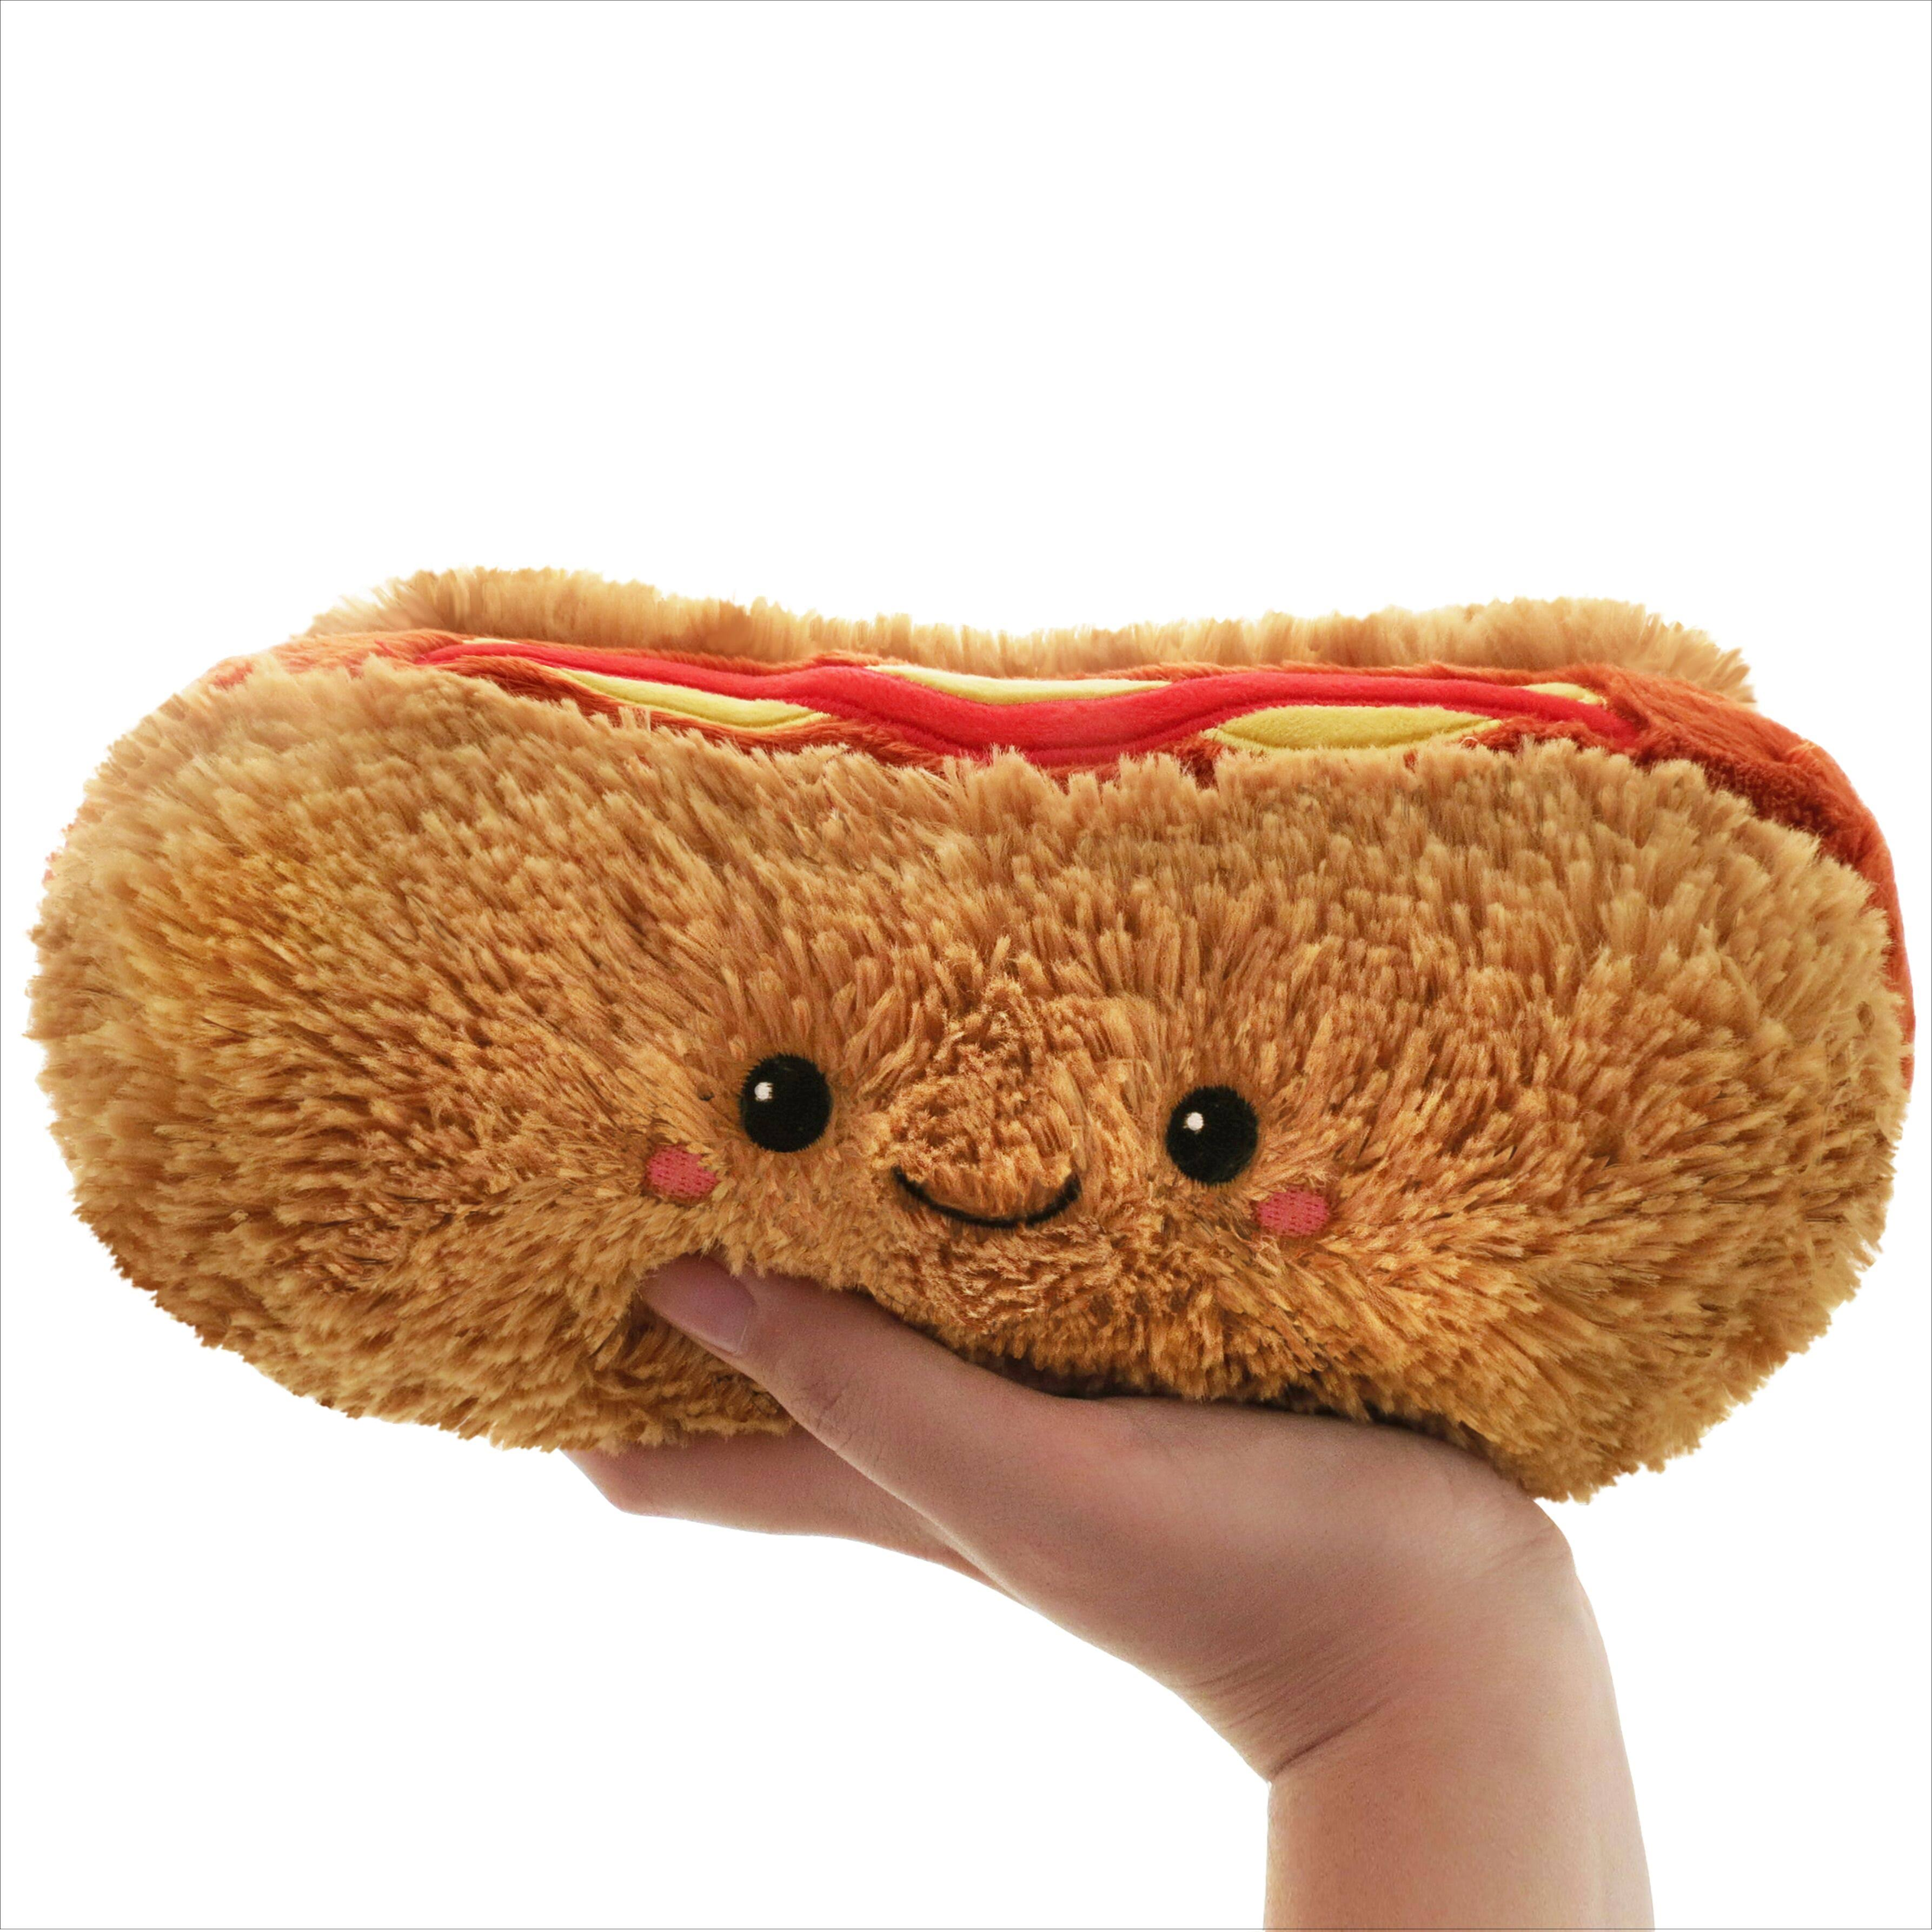 Squishable Hot Dog Mini Plush Toy - 10""